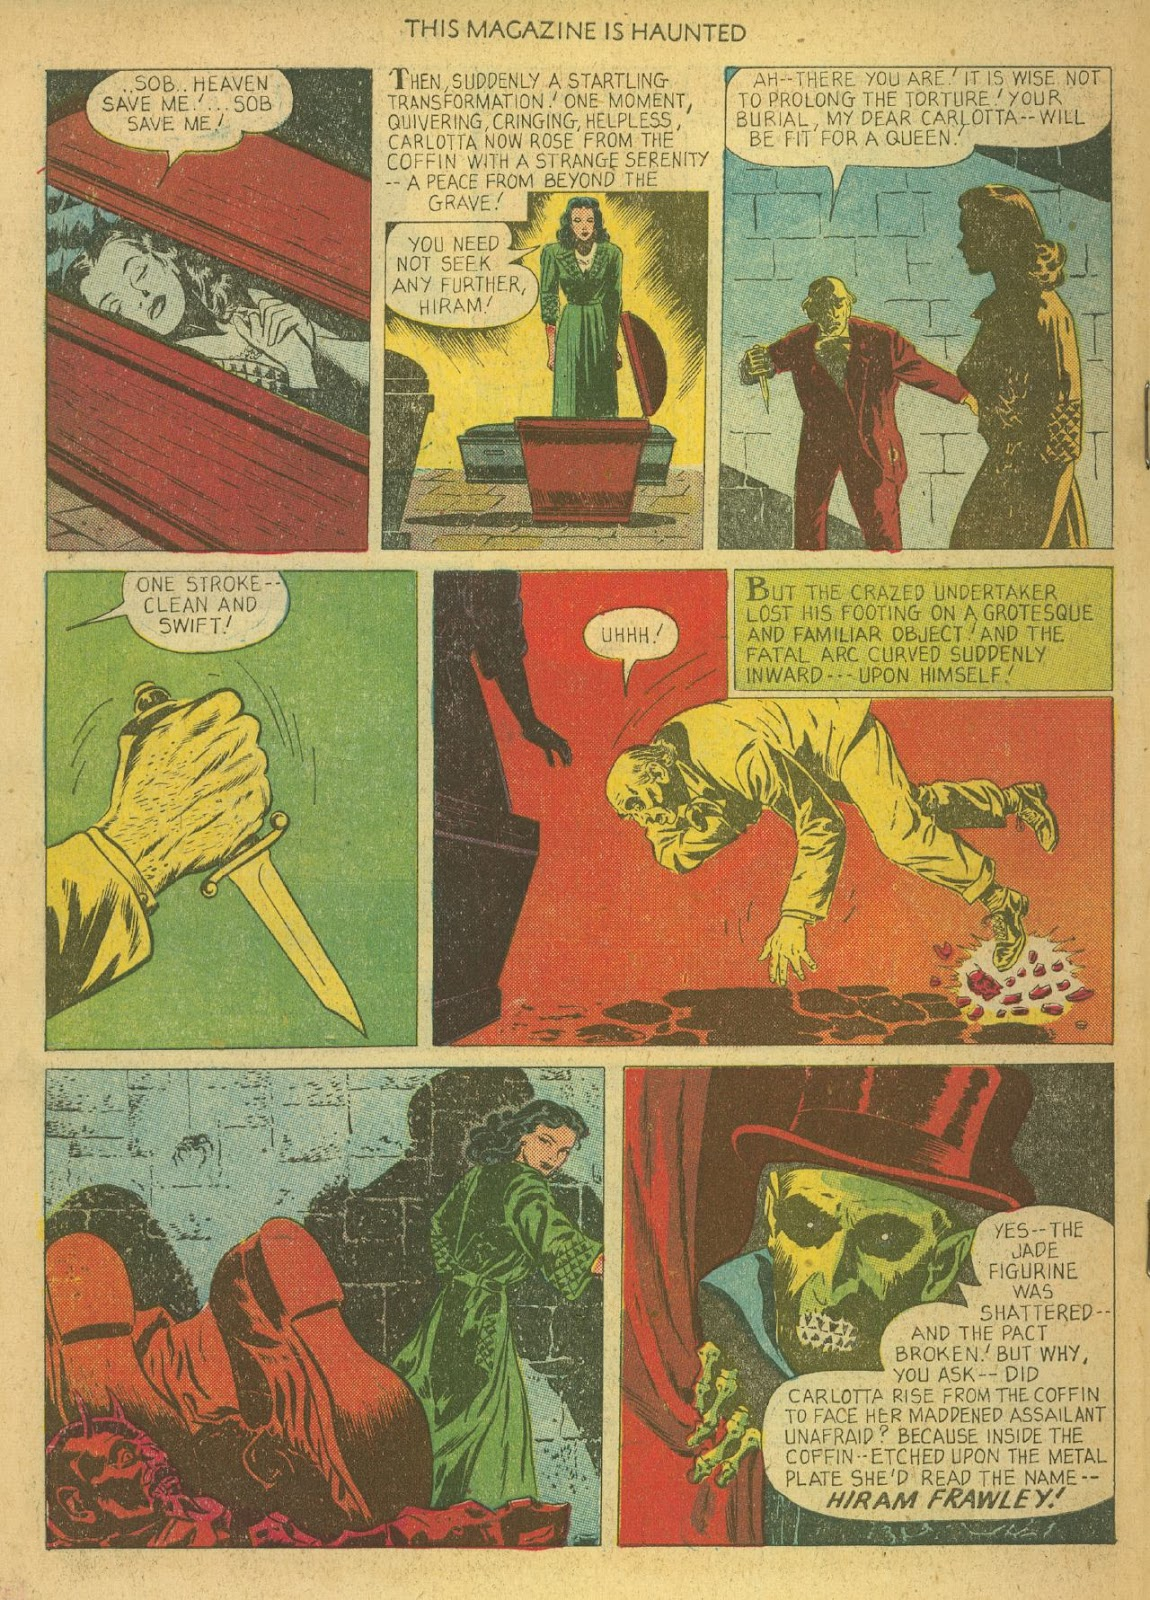 Read online This Magazine Is Haunted comic -  Issue #1 - 34